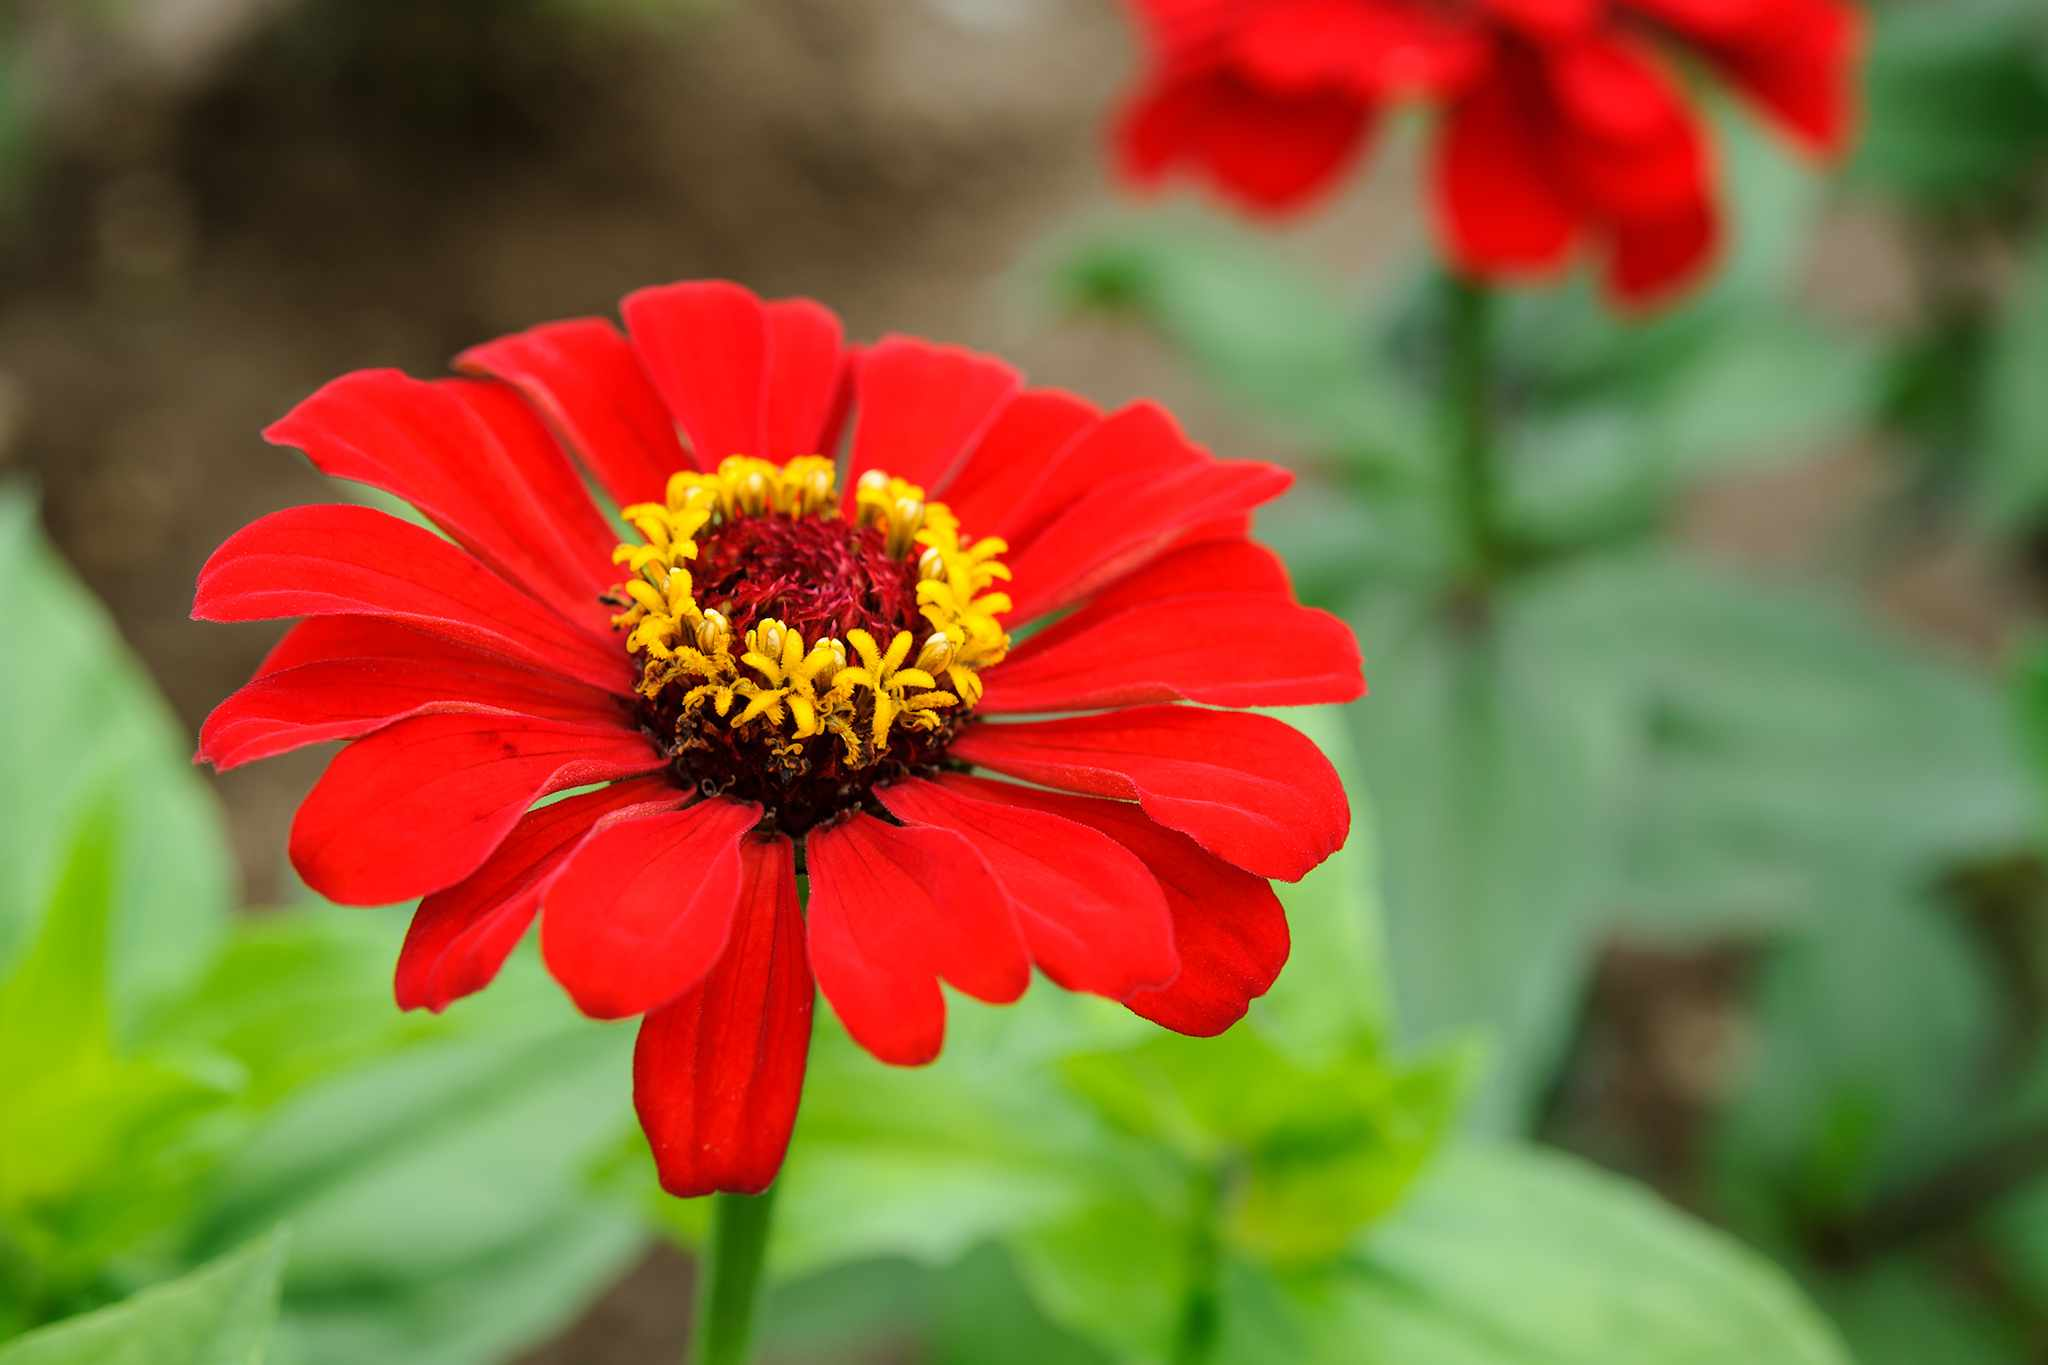 Bright red bloom of Zinnia elegans 'Scarlet Flame'